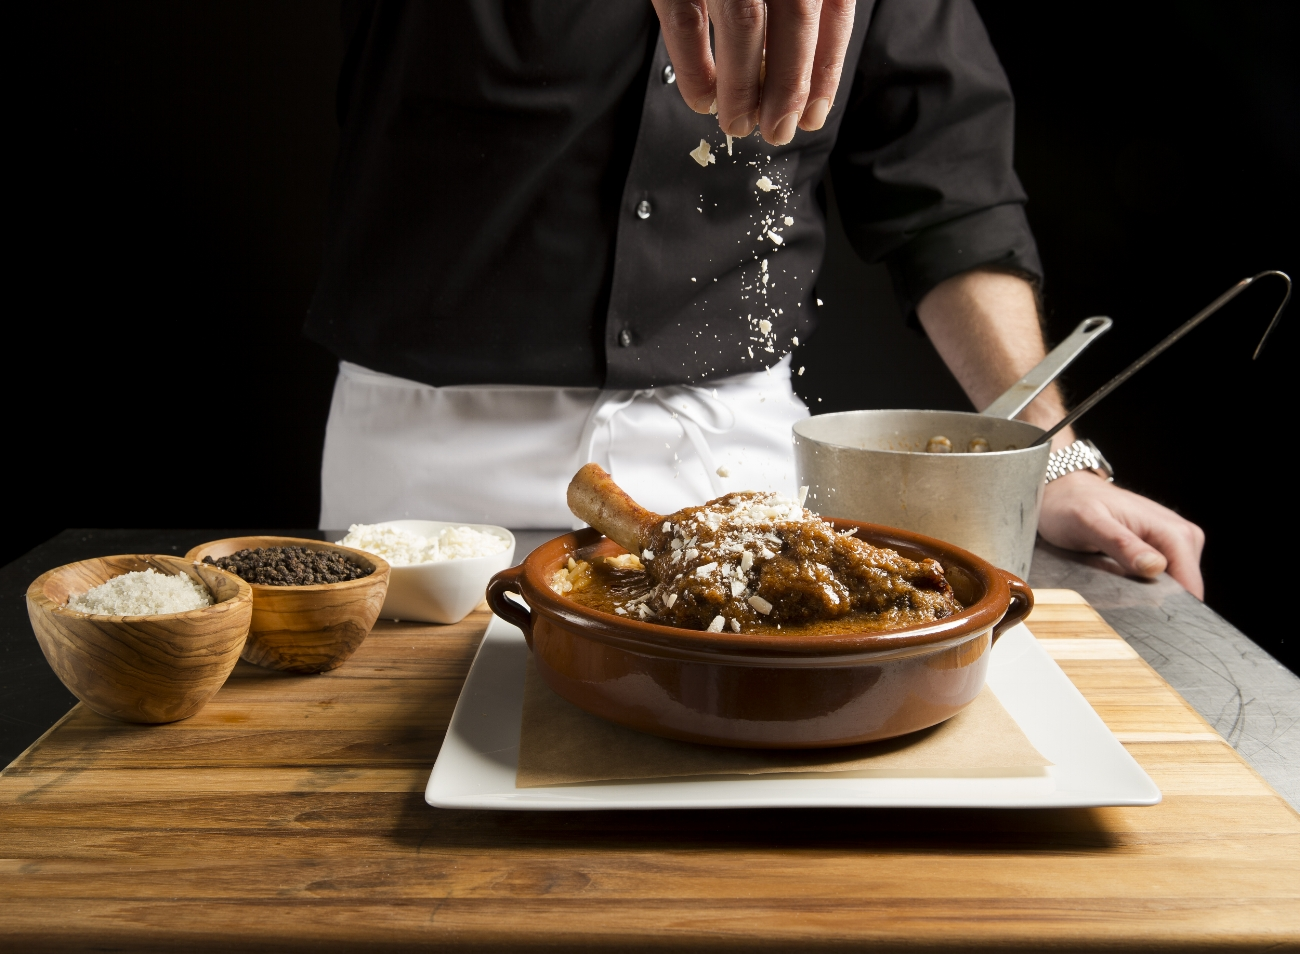 Food Photography - aristo's greek cuisine in high-definition